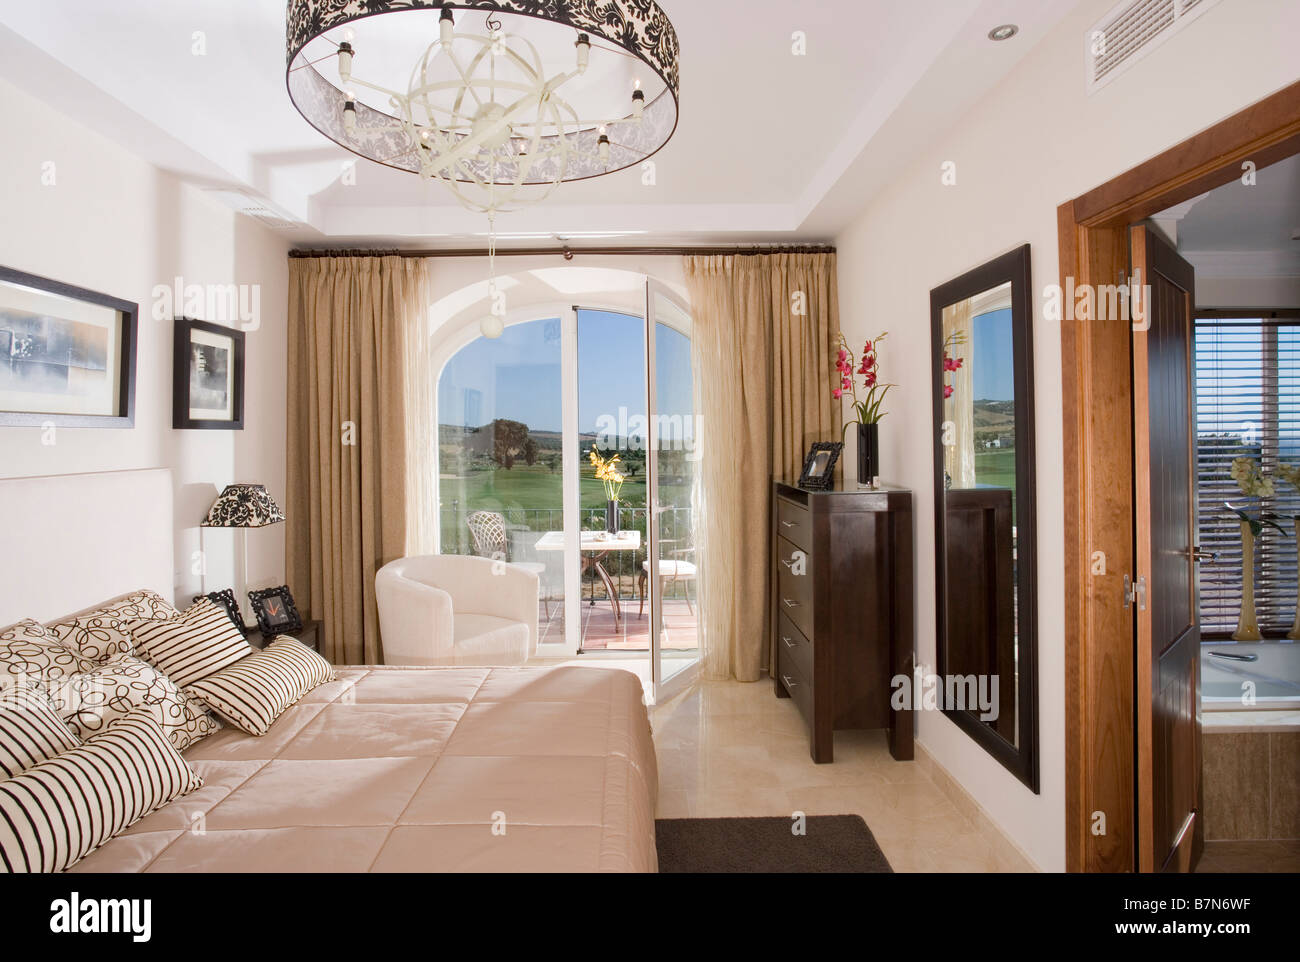 Modern Bedroom In Spanish Holiday Apartment With Patio Doors To Terrace